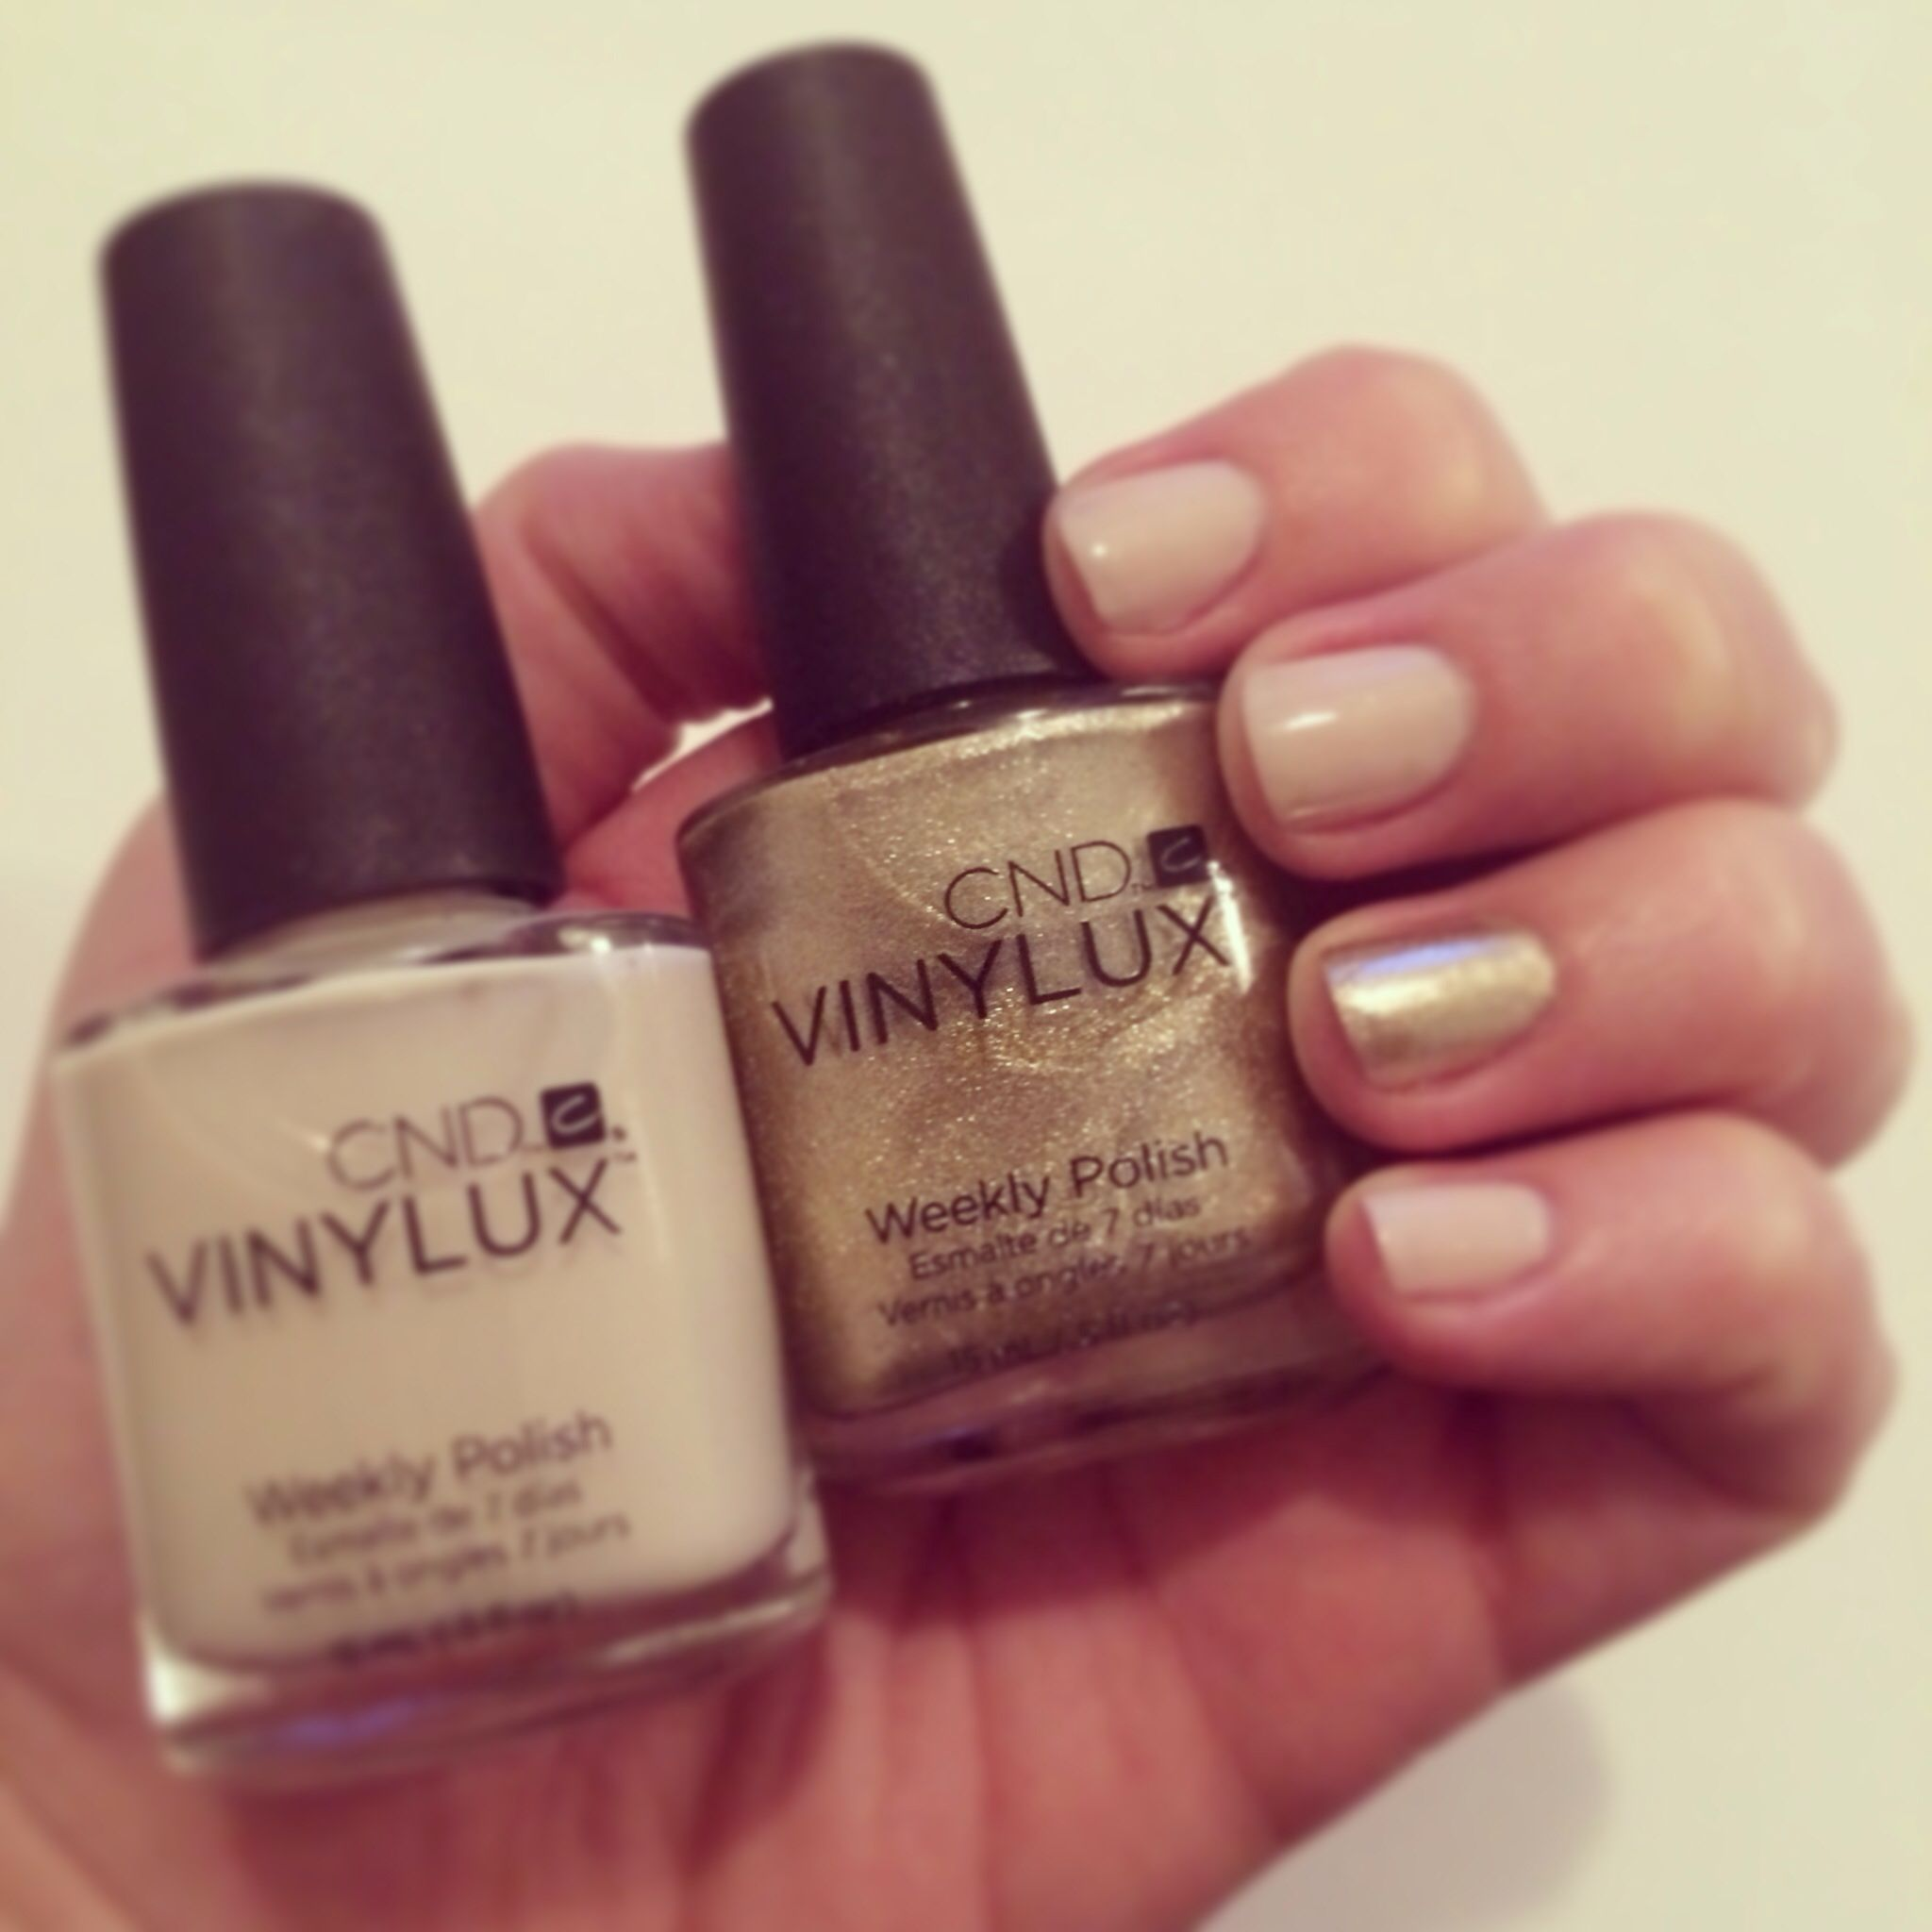 CNDVinylux Powder My Nose (nude) paired with #CNDVinylux in Locket ...